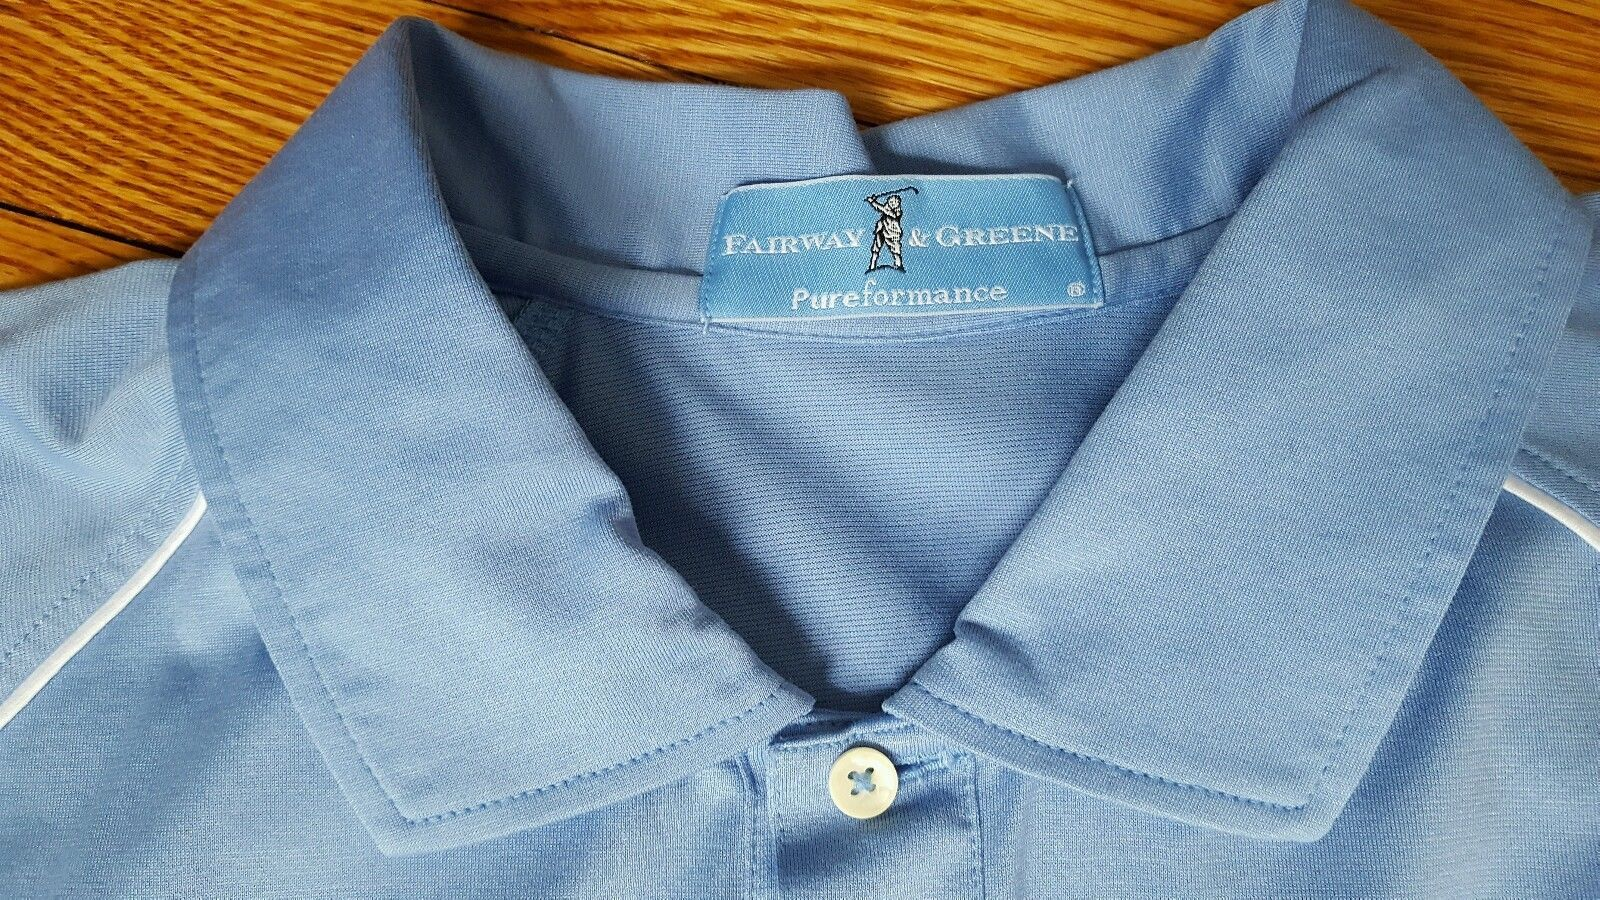 FAIRWAY & GREENE Pureformance Golf Polo Shirt Mens Size Large Blue